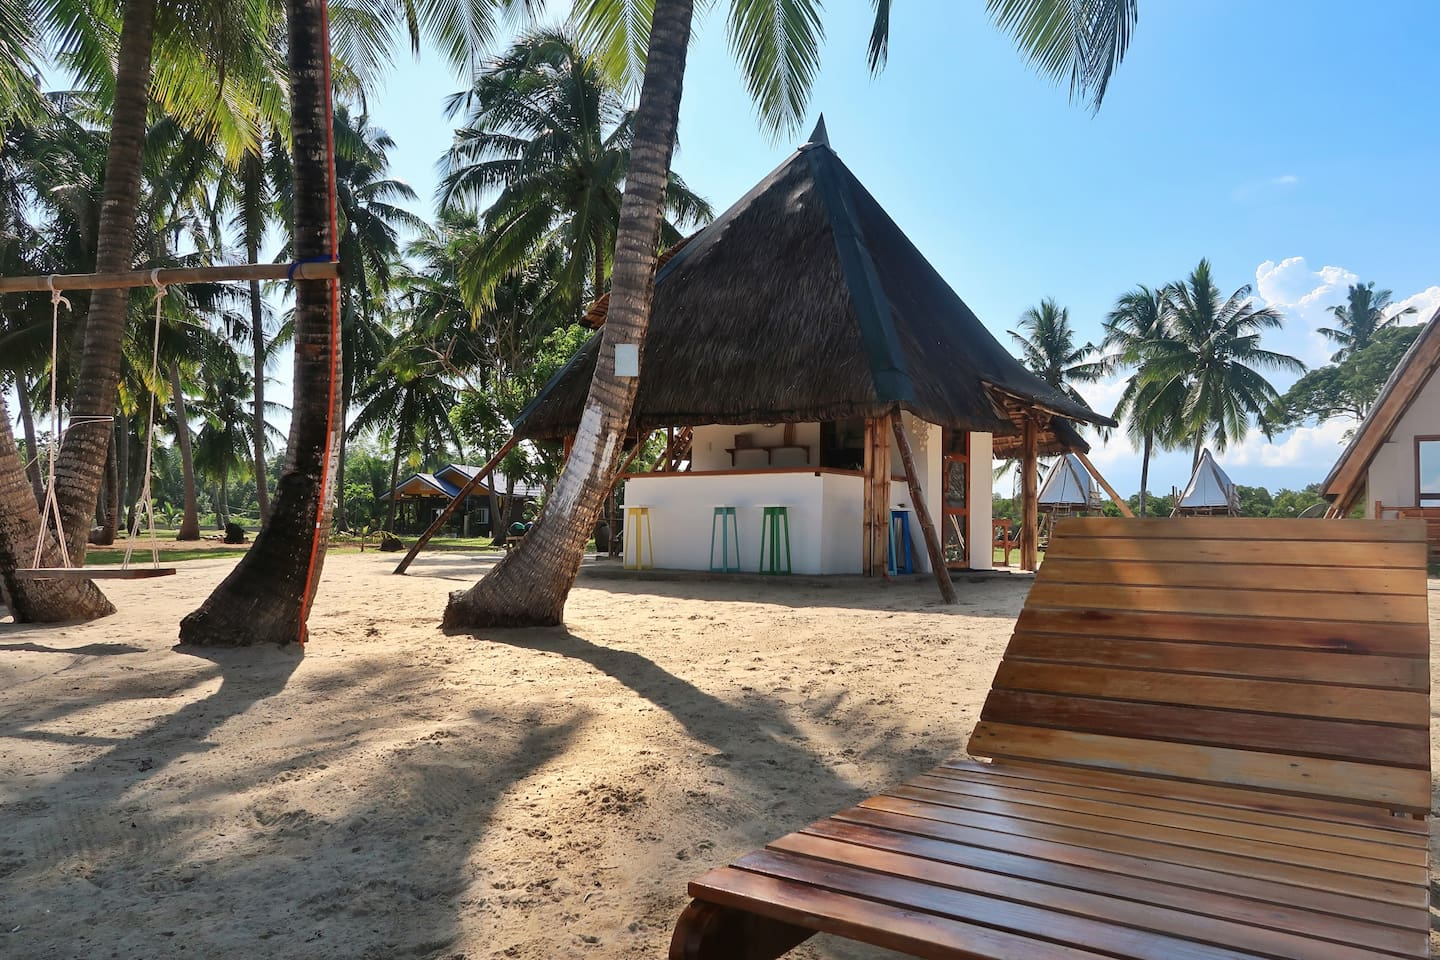 Get under the sun and lounge by the beach.